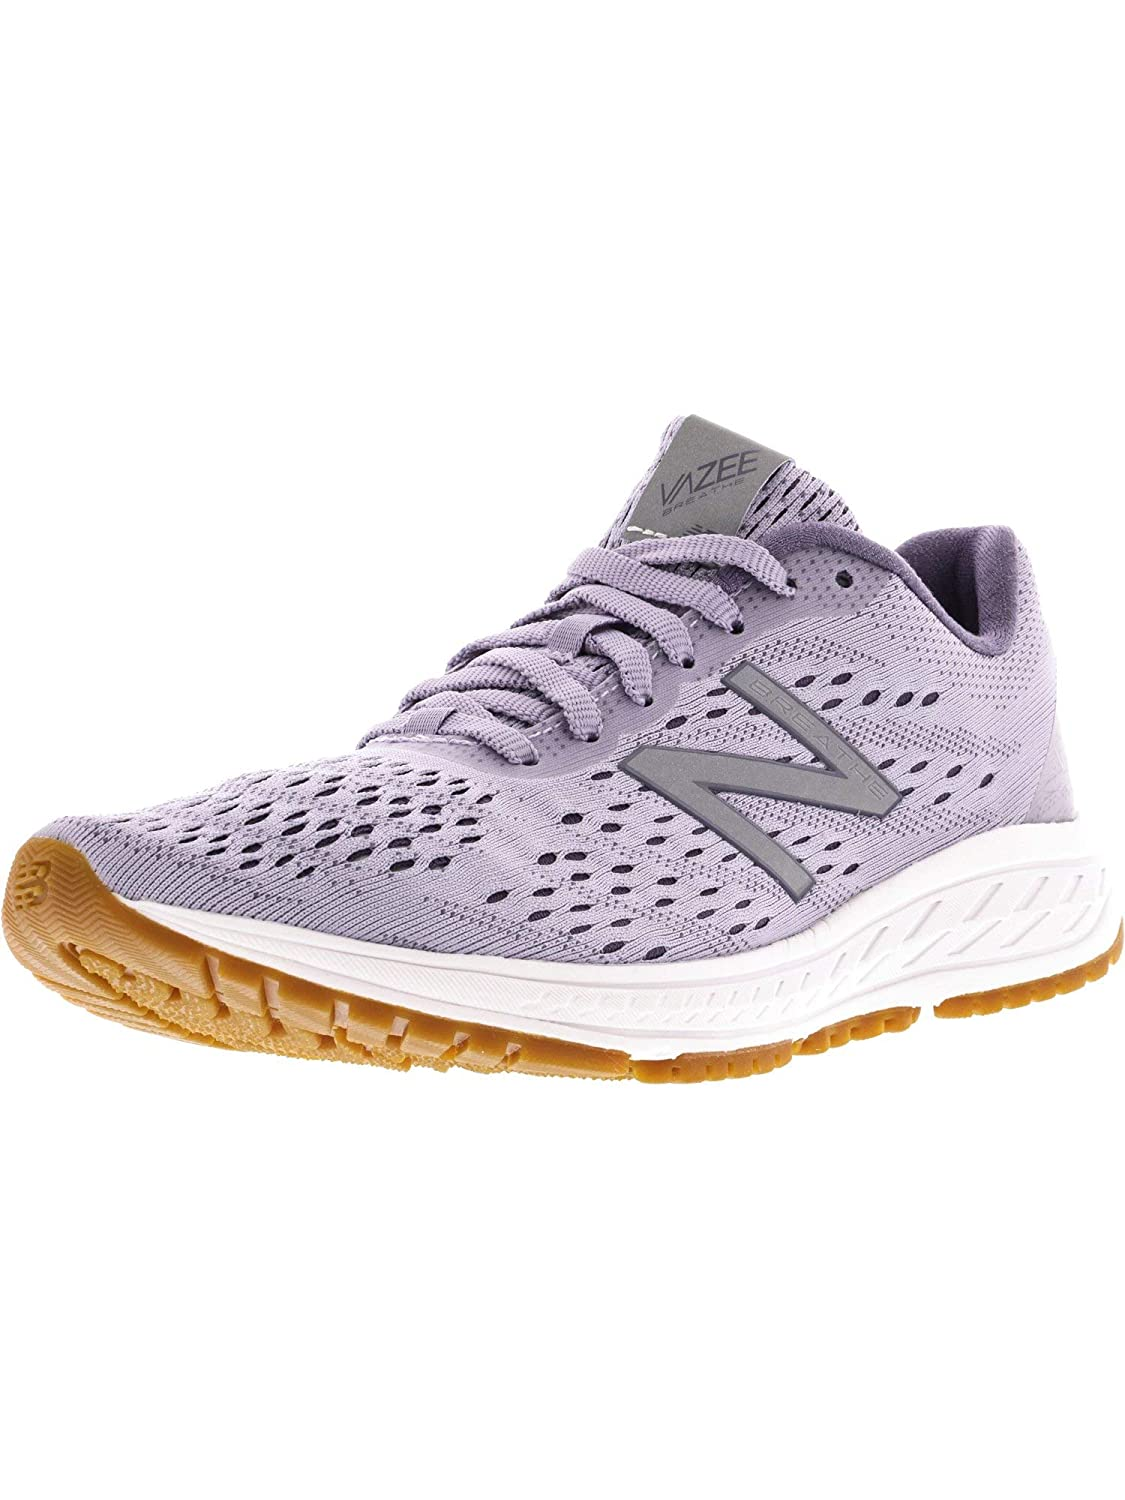 a02d5decaaa1c new balance Women s Wbre Ahl2 Ankle-High Running Shoe - 5.5M  Buy Online at  Low Prices in India - Amazon.in